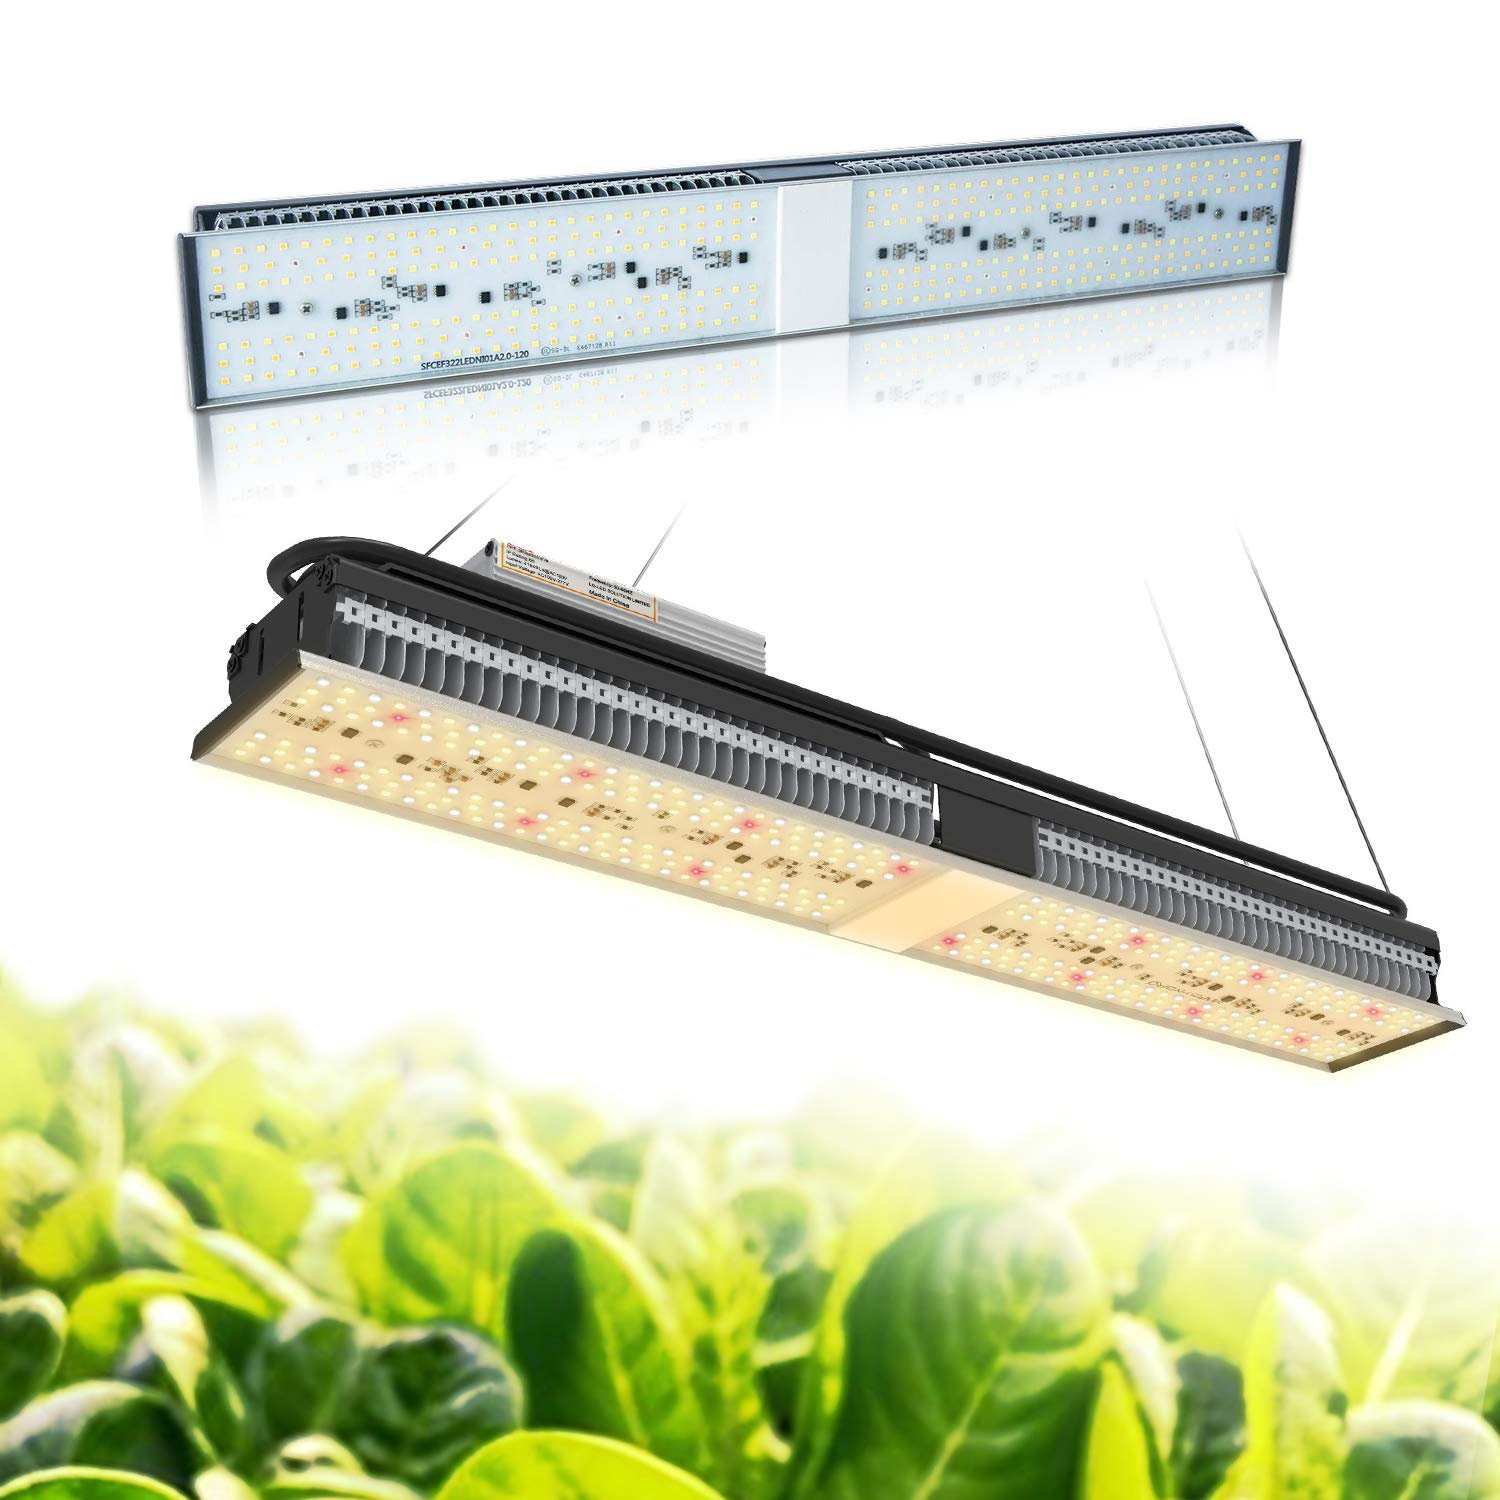 MARS HYDRO SP 150 Led Grow Light Sunlike Full Spectrum Grow Lamps for Indoor Plants Veg and Flower Bloom Hydroponic LED Growing Lights Fixtures for Greenhouse 2ft Four for 4x4 Coverage by MARS HYDRO